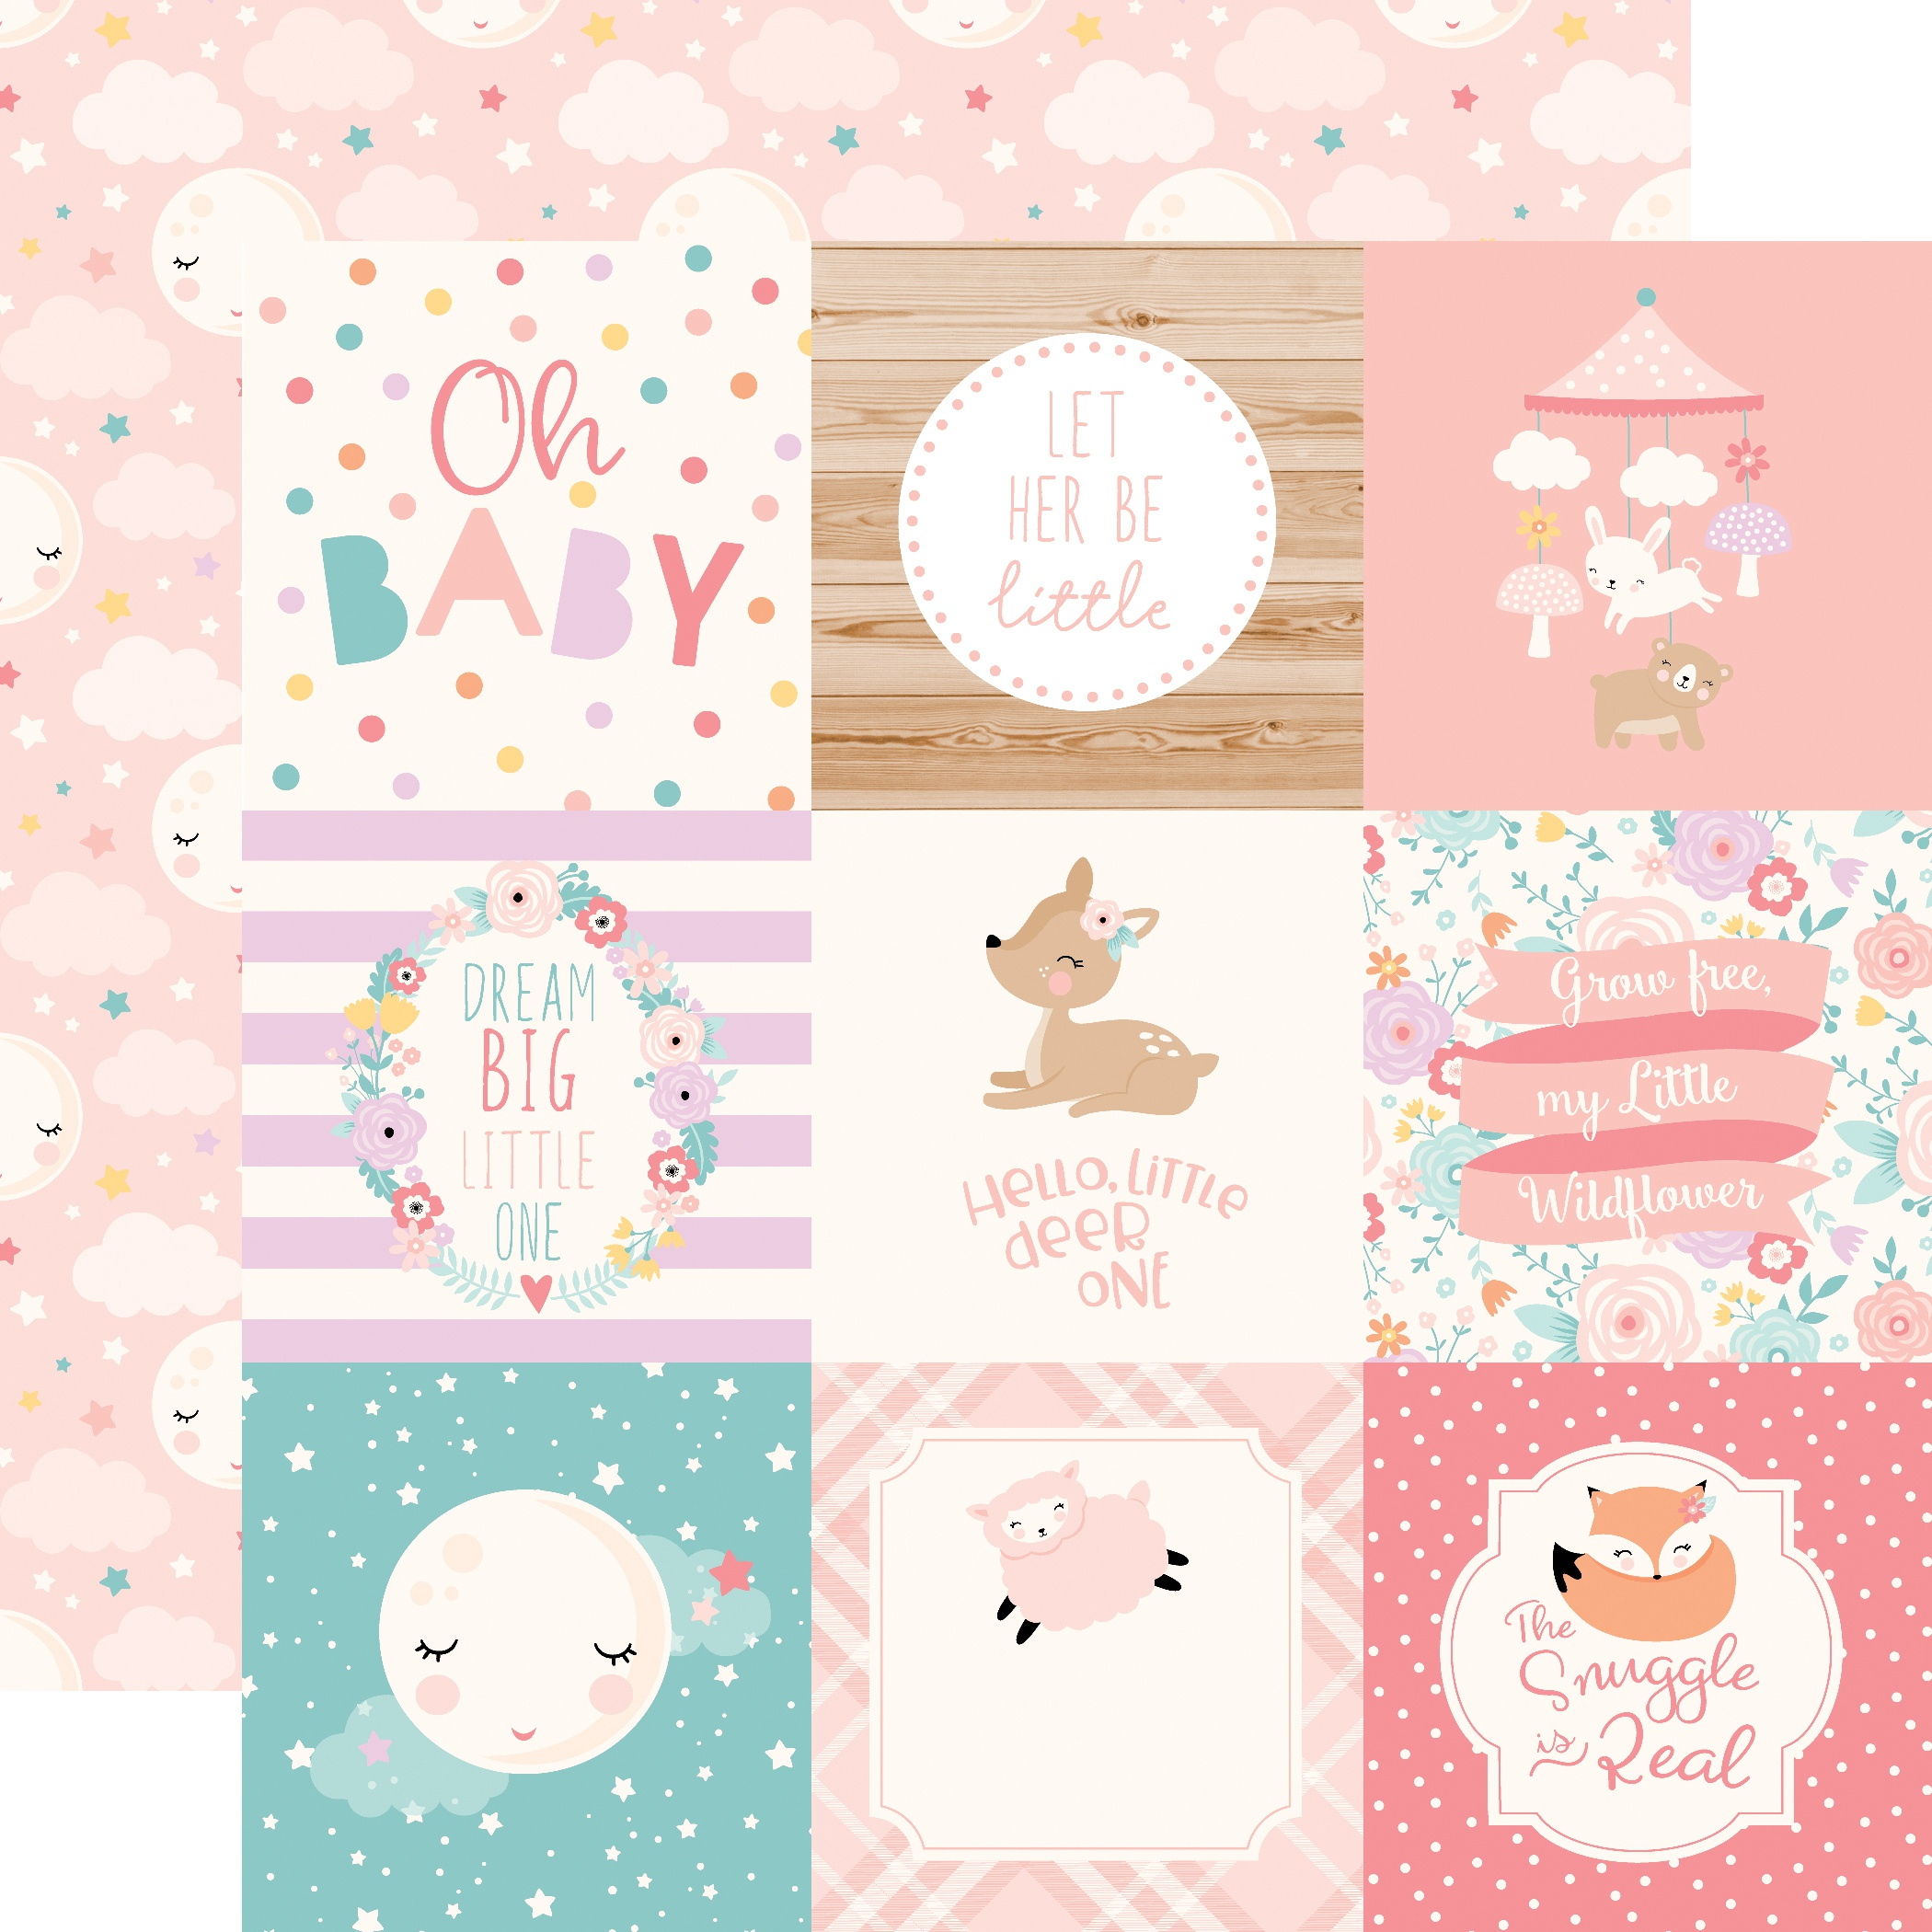 PPR - HELLO BABY IT'S A GIRL 4X4 JOURNALING CARDS